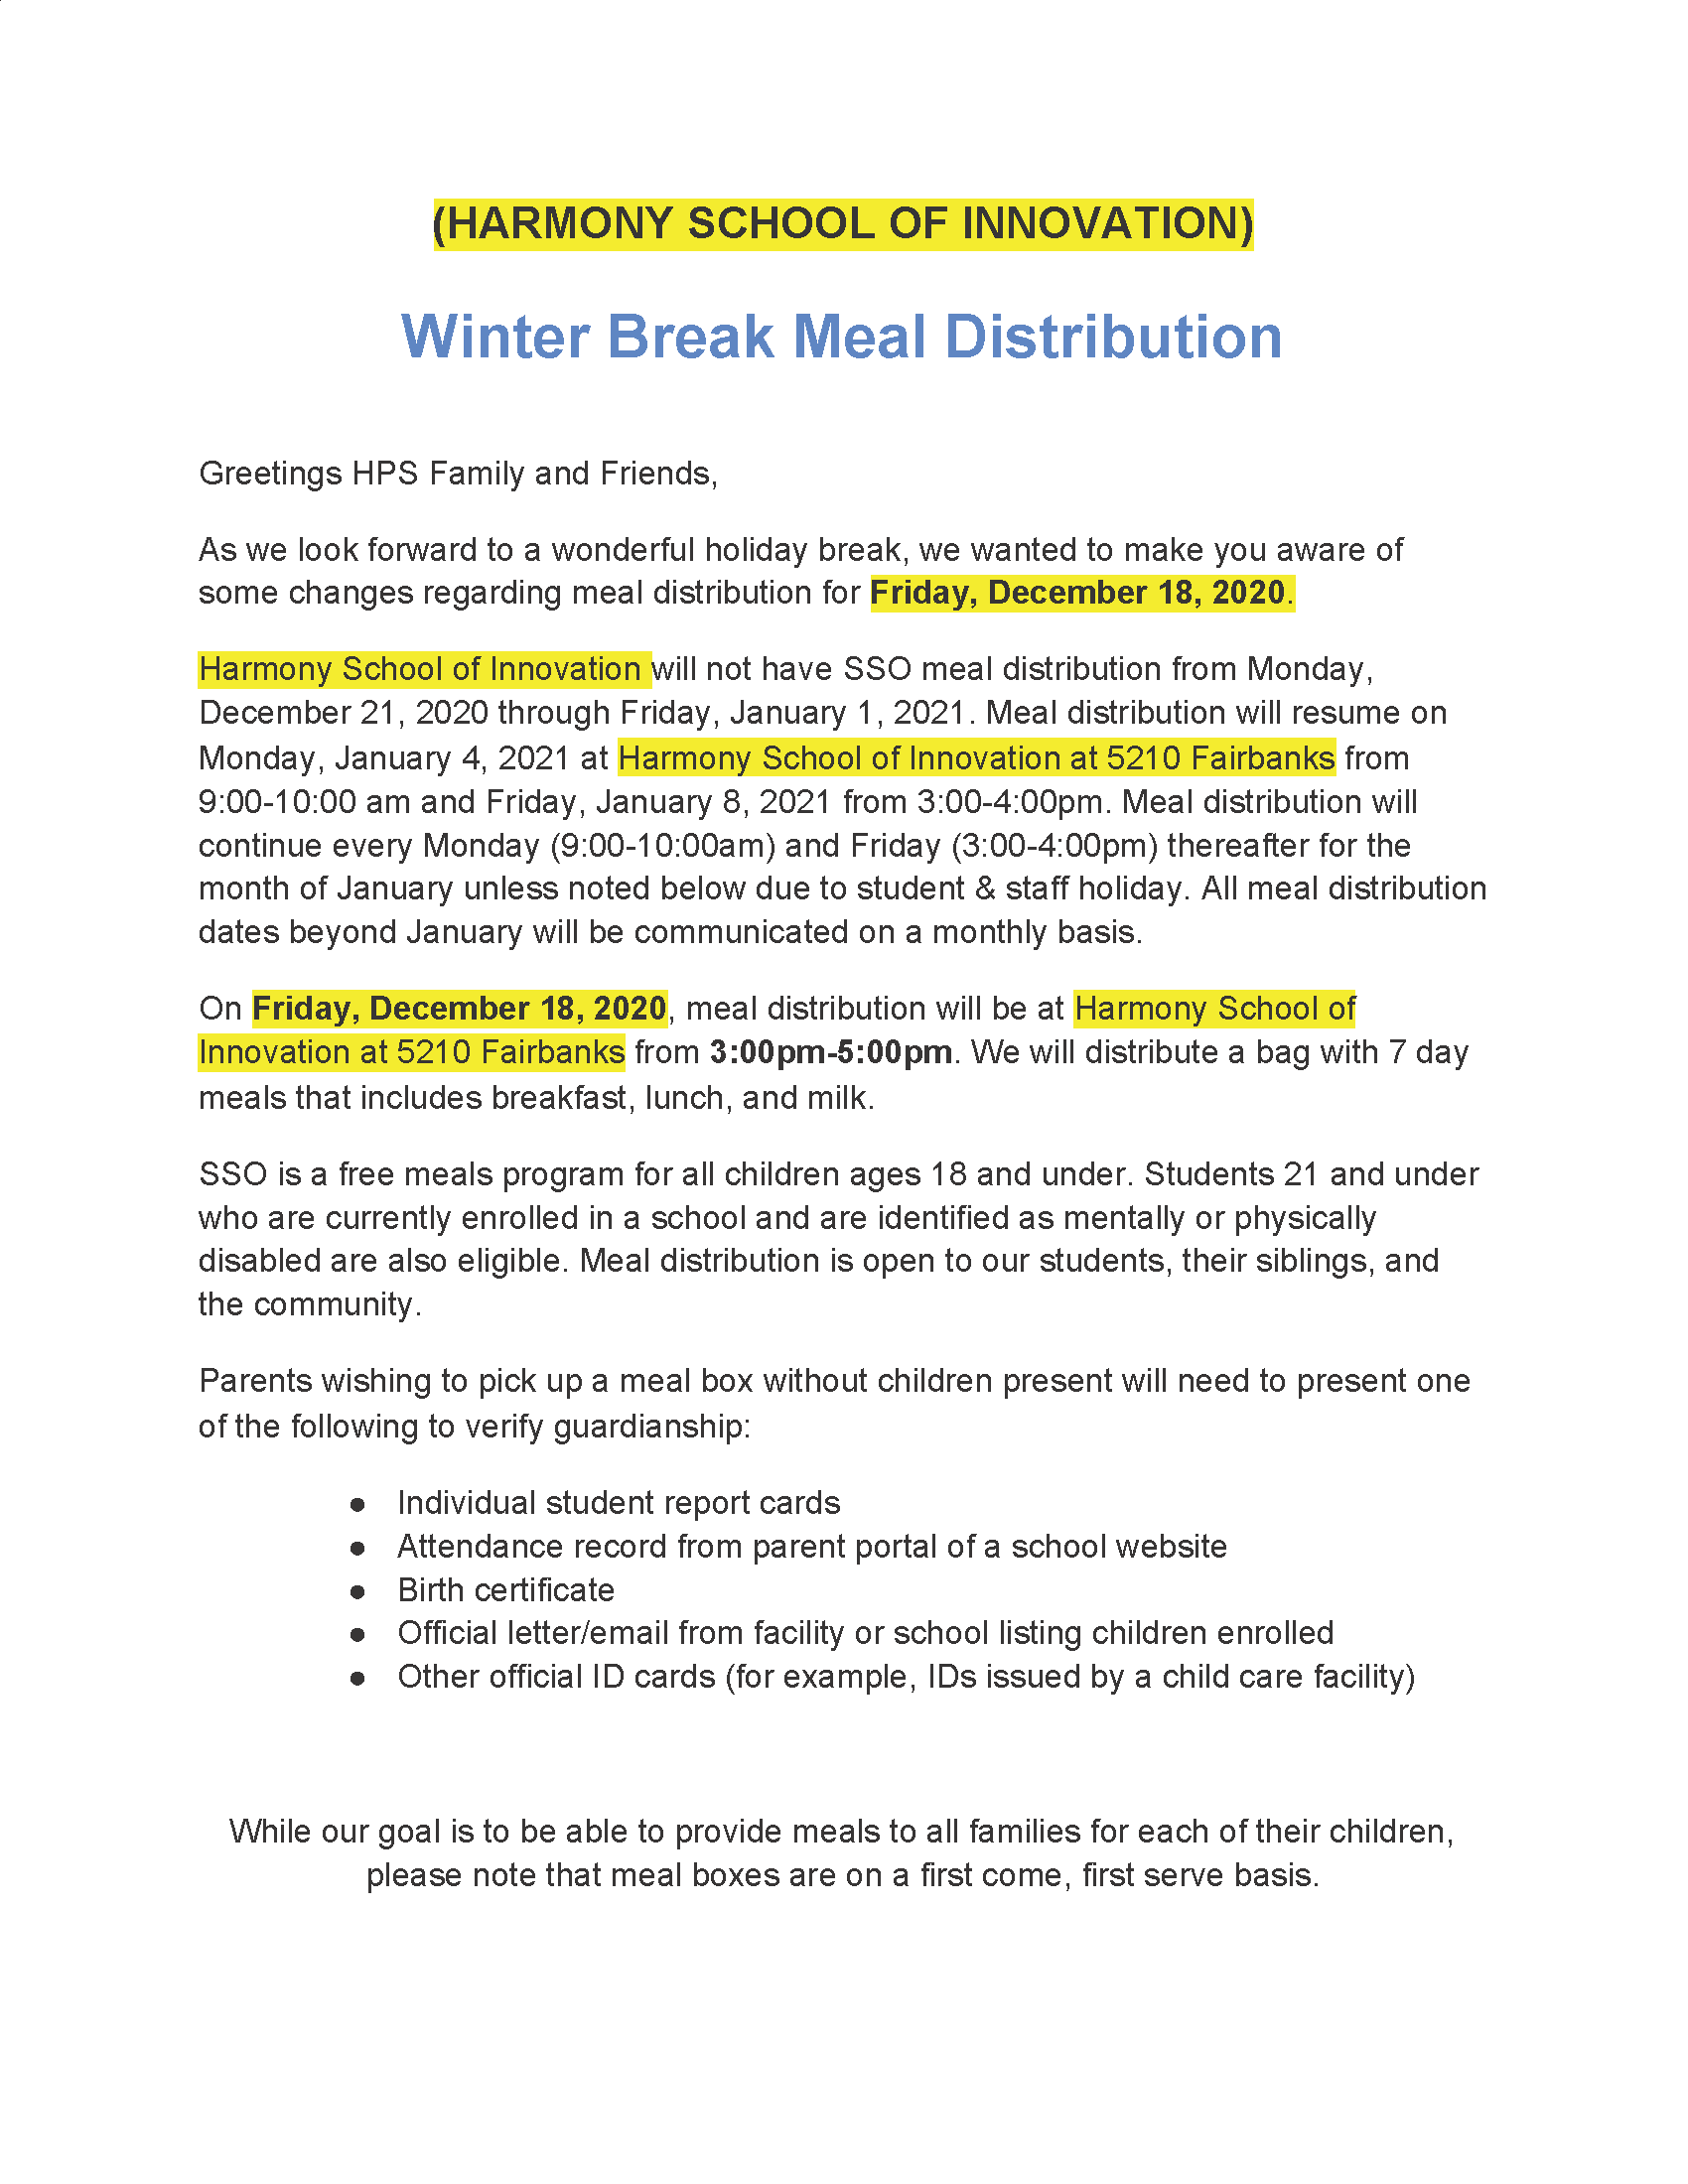 An image of the Winter Break Meal Distribution letter, page 1